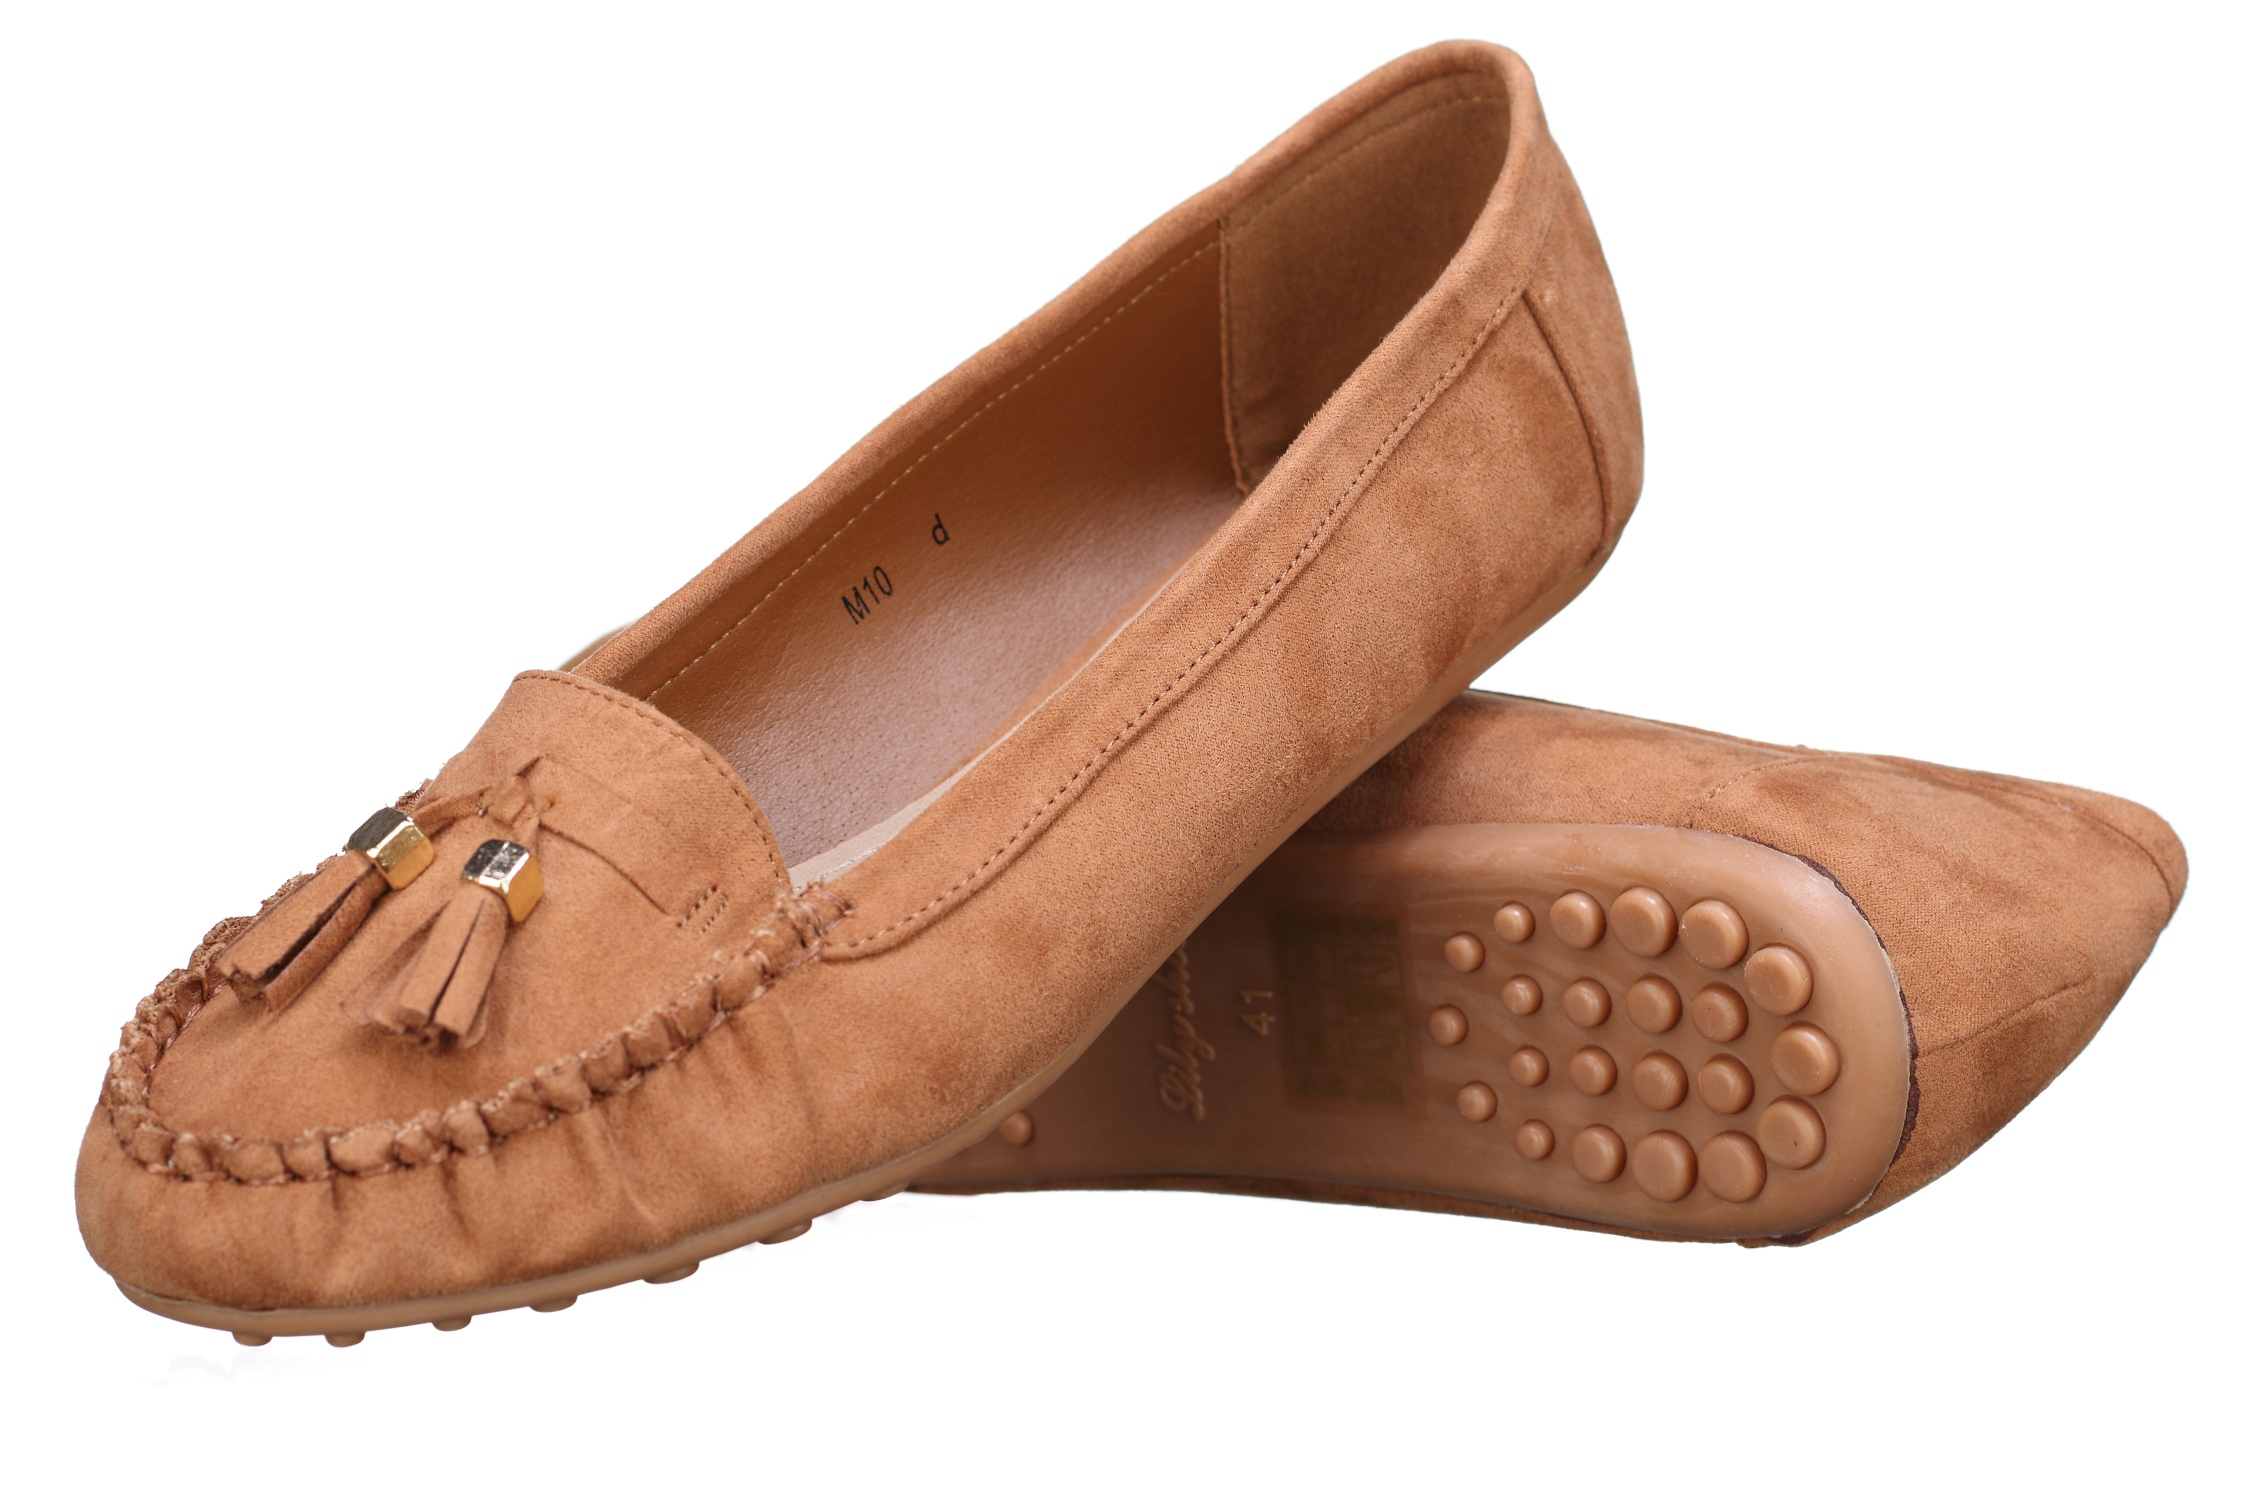 http://www.leadermode.com/123808/lily-shoes-m10-camel.jpg